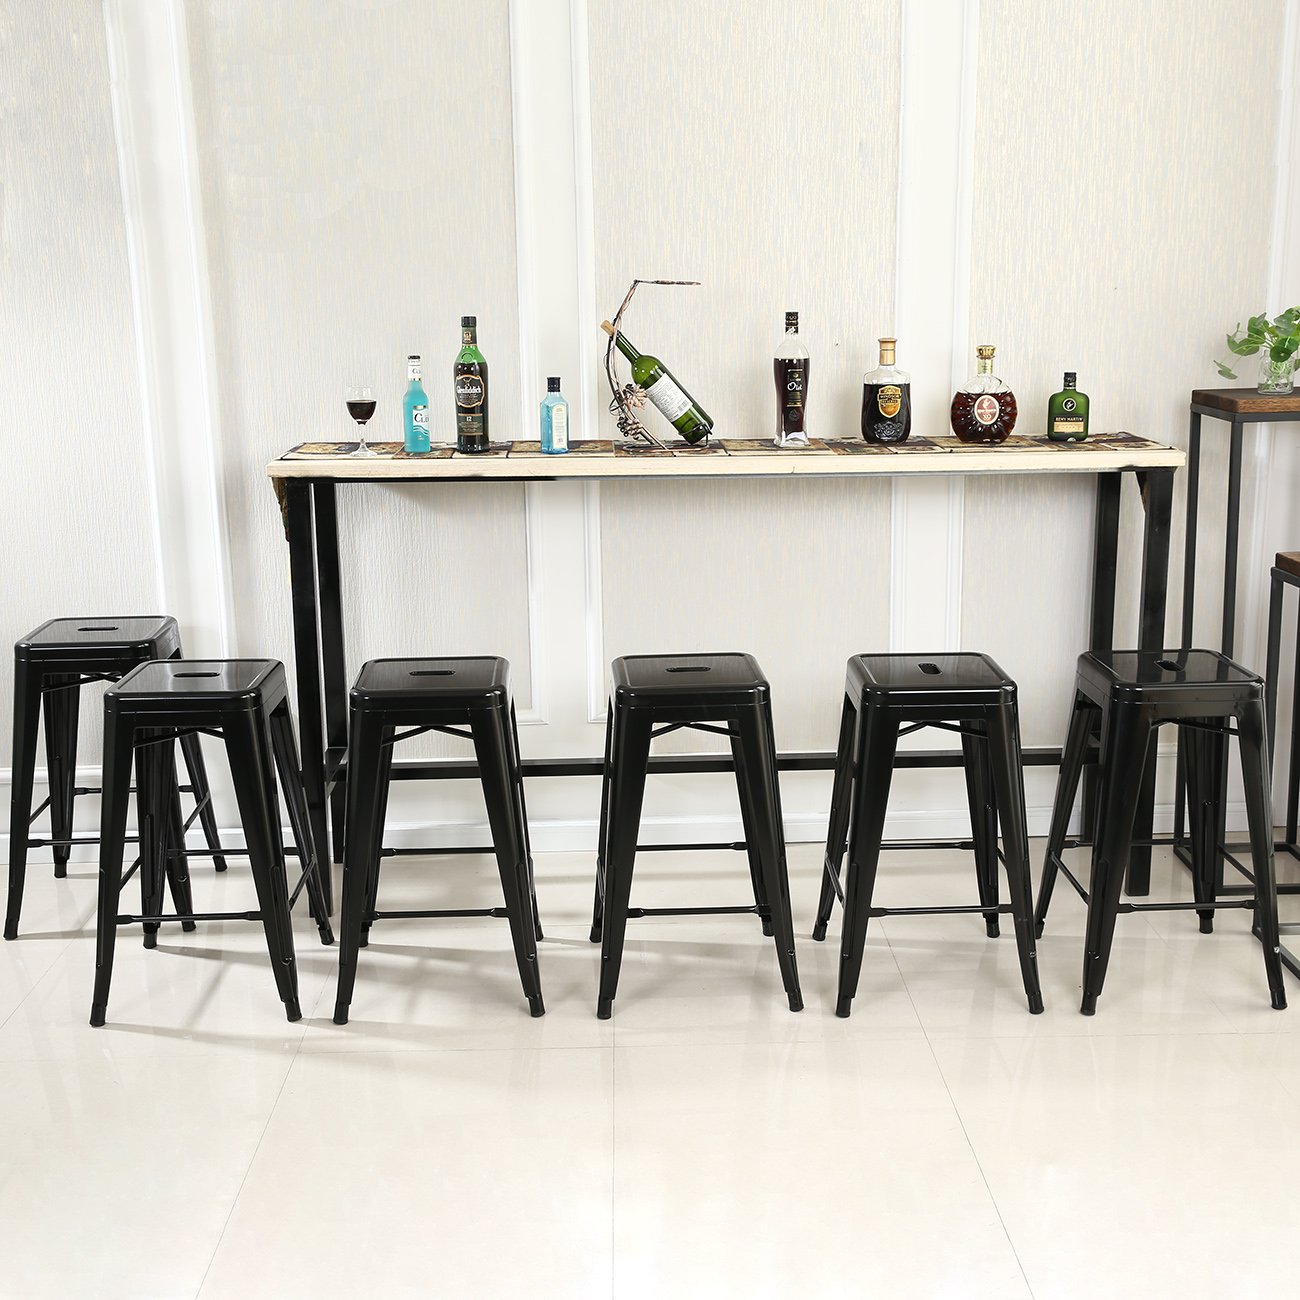 Metal Bar Stools Set Of (6) Vintage Antique Style Counter